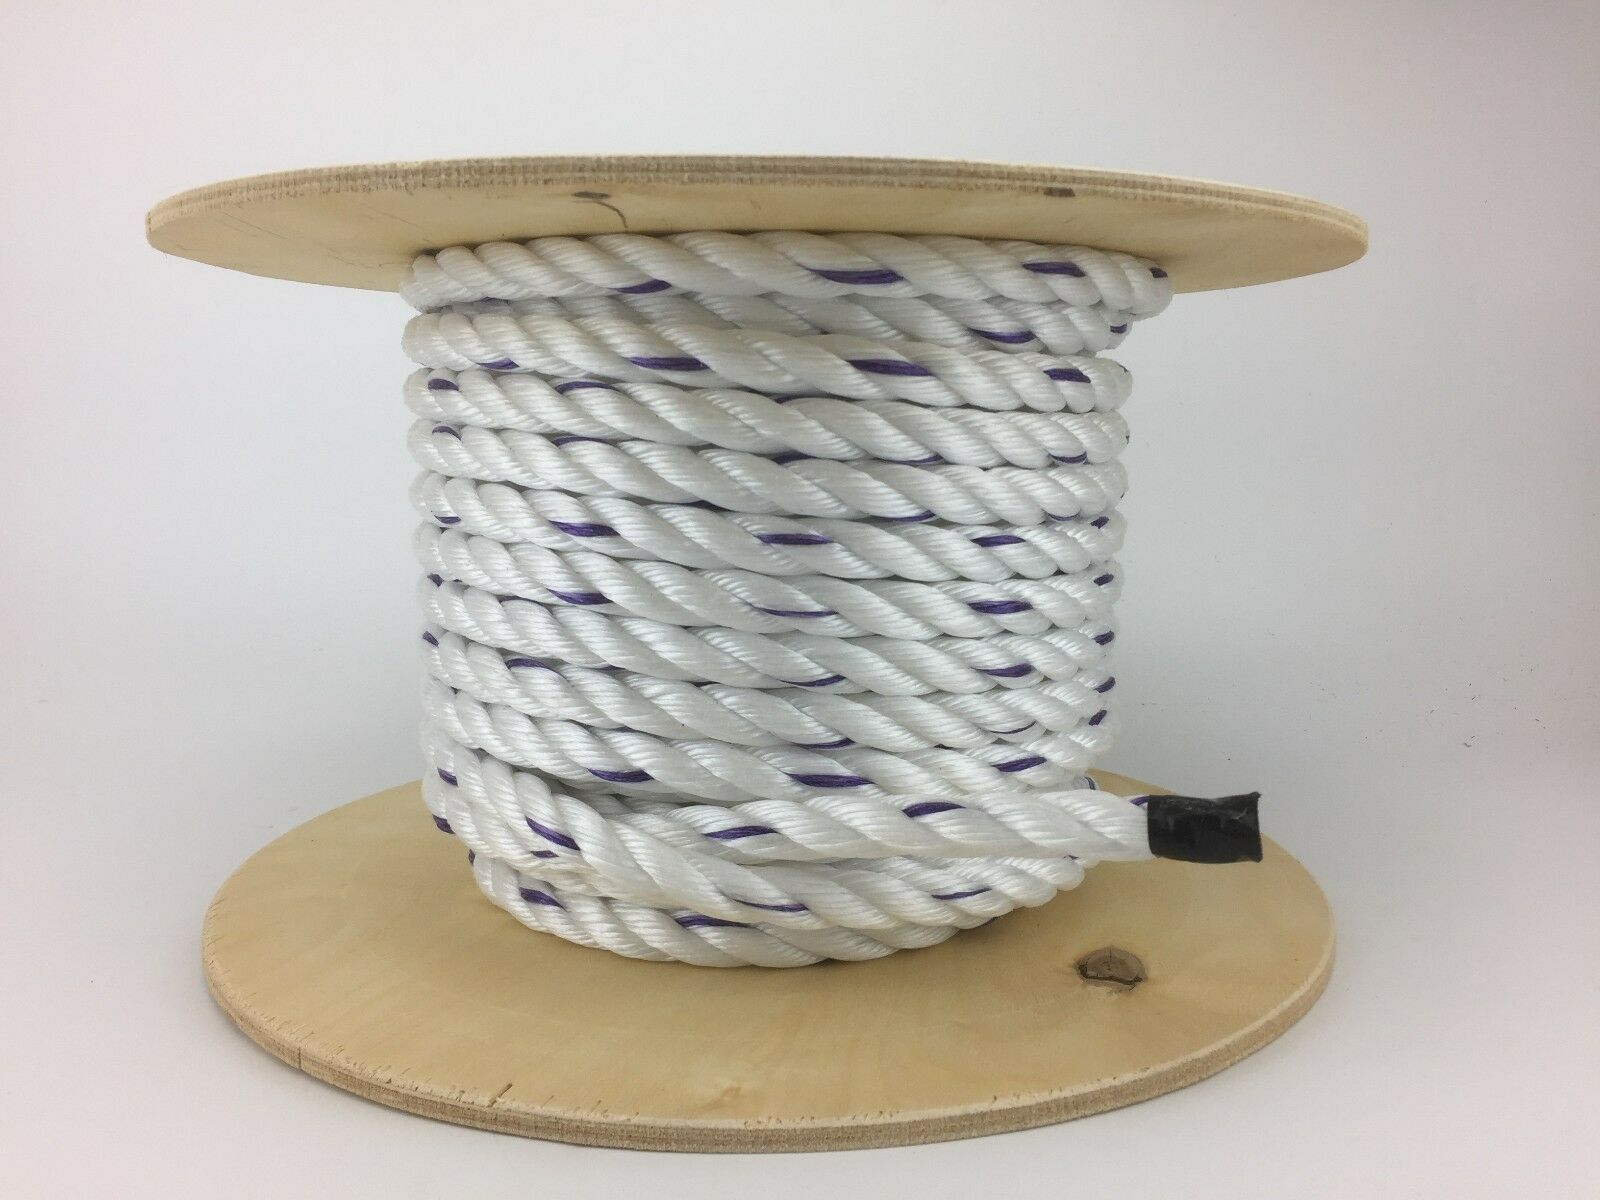 16mm White Polysteel Rope x 100 Metres, Arborist, Rigging, Tree Surgery Rope